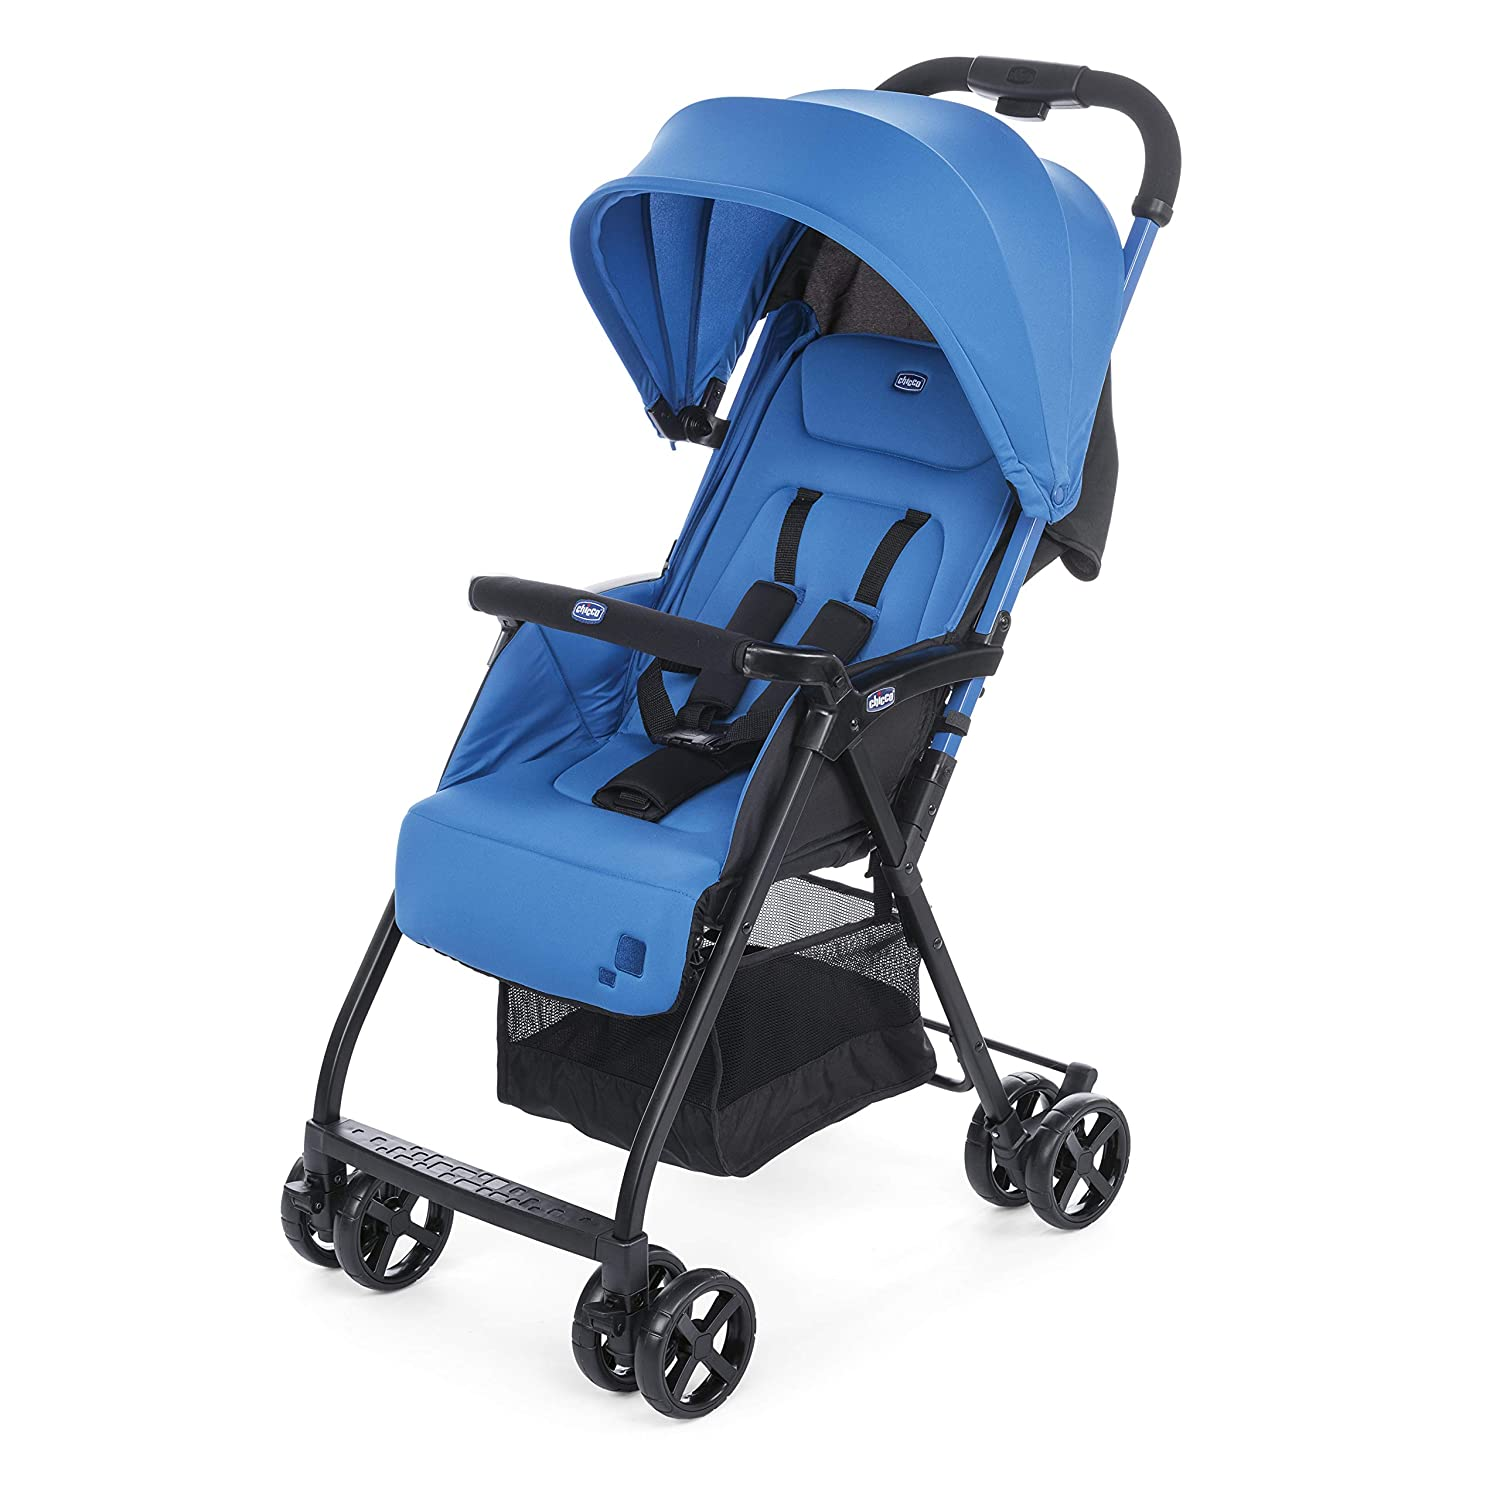 Amazon.com: Chicco carriola ohlala Color Power Blue: Baby